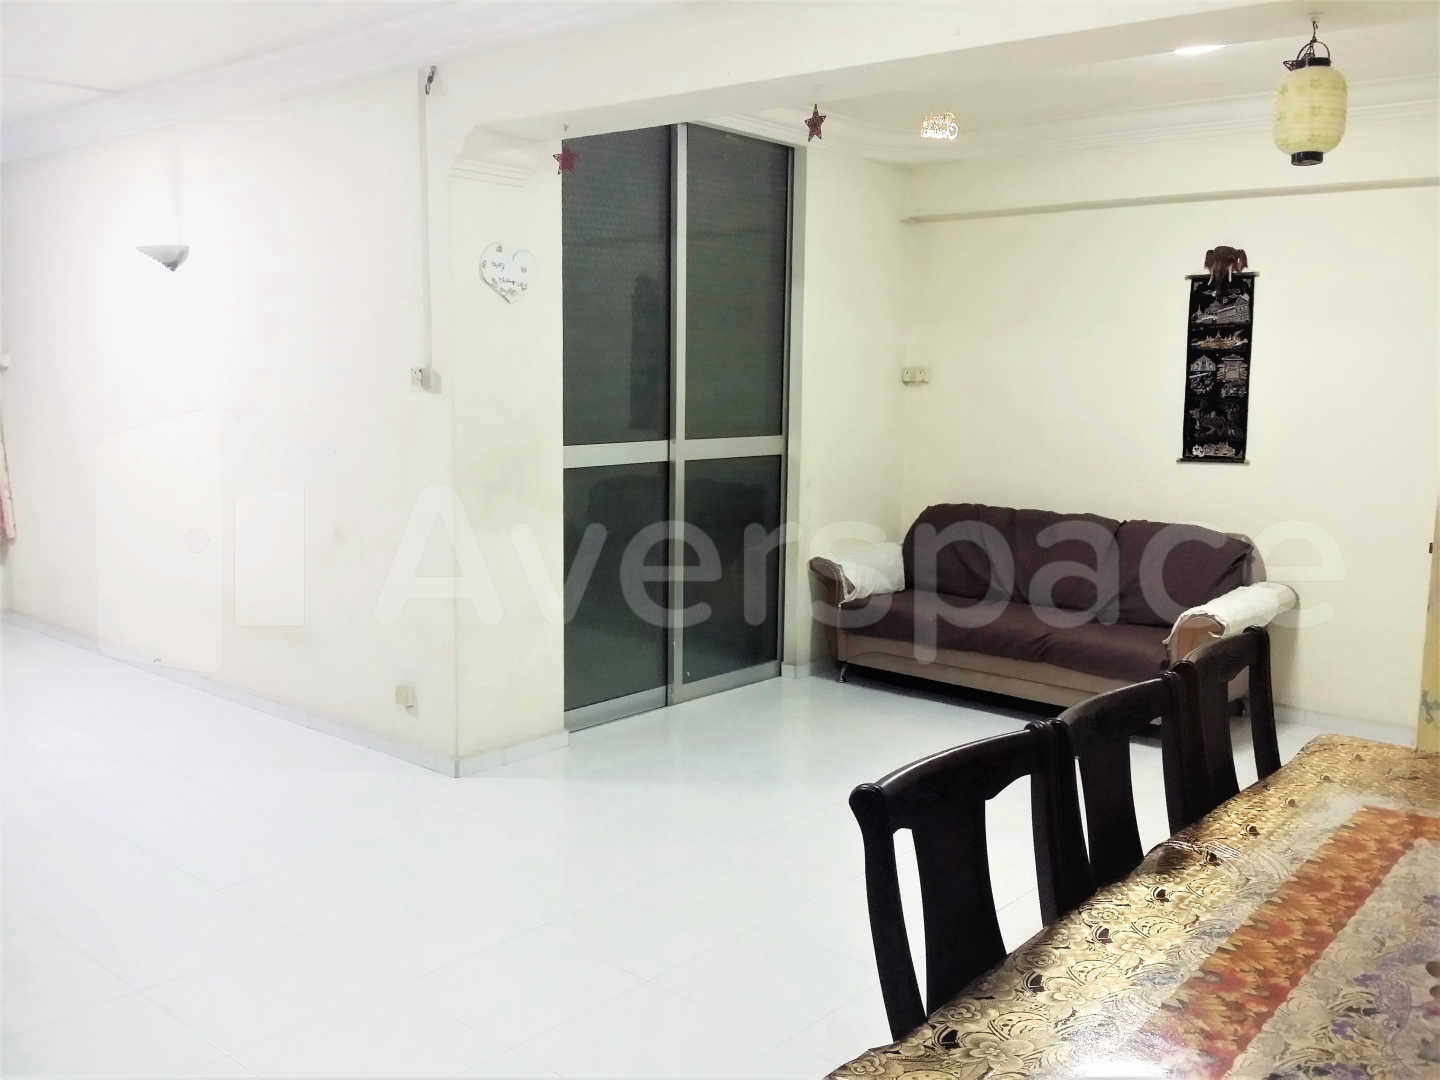 486A Tampines Avenue 9, District 18 Singapore